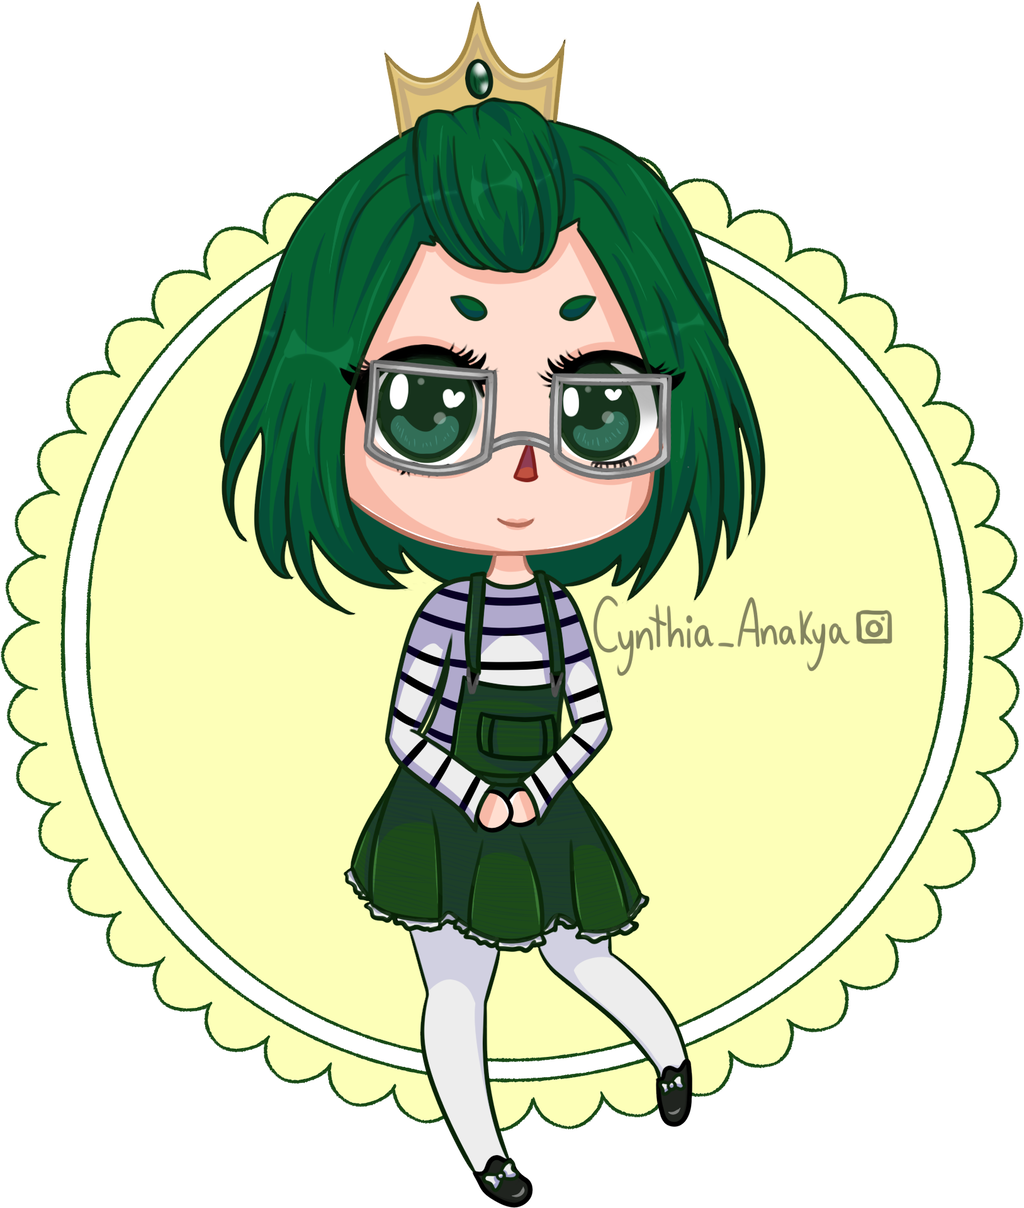 Giveaway drawing transparent. Animal crossing winner by